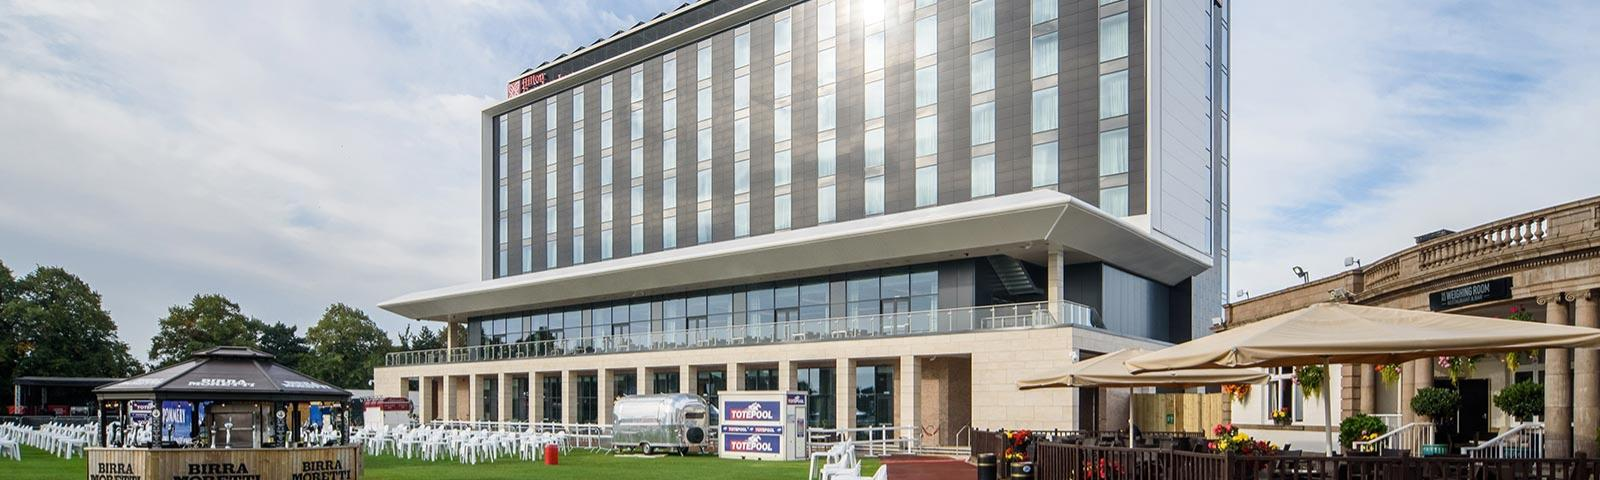 The Hilton Hotel at Doncaster Racecourse